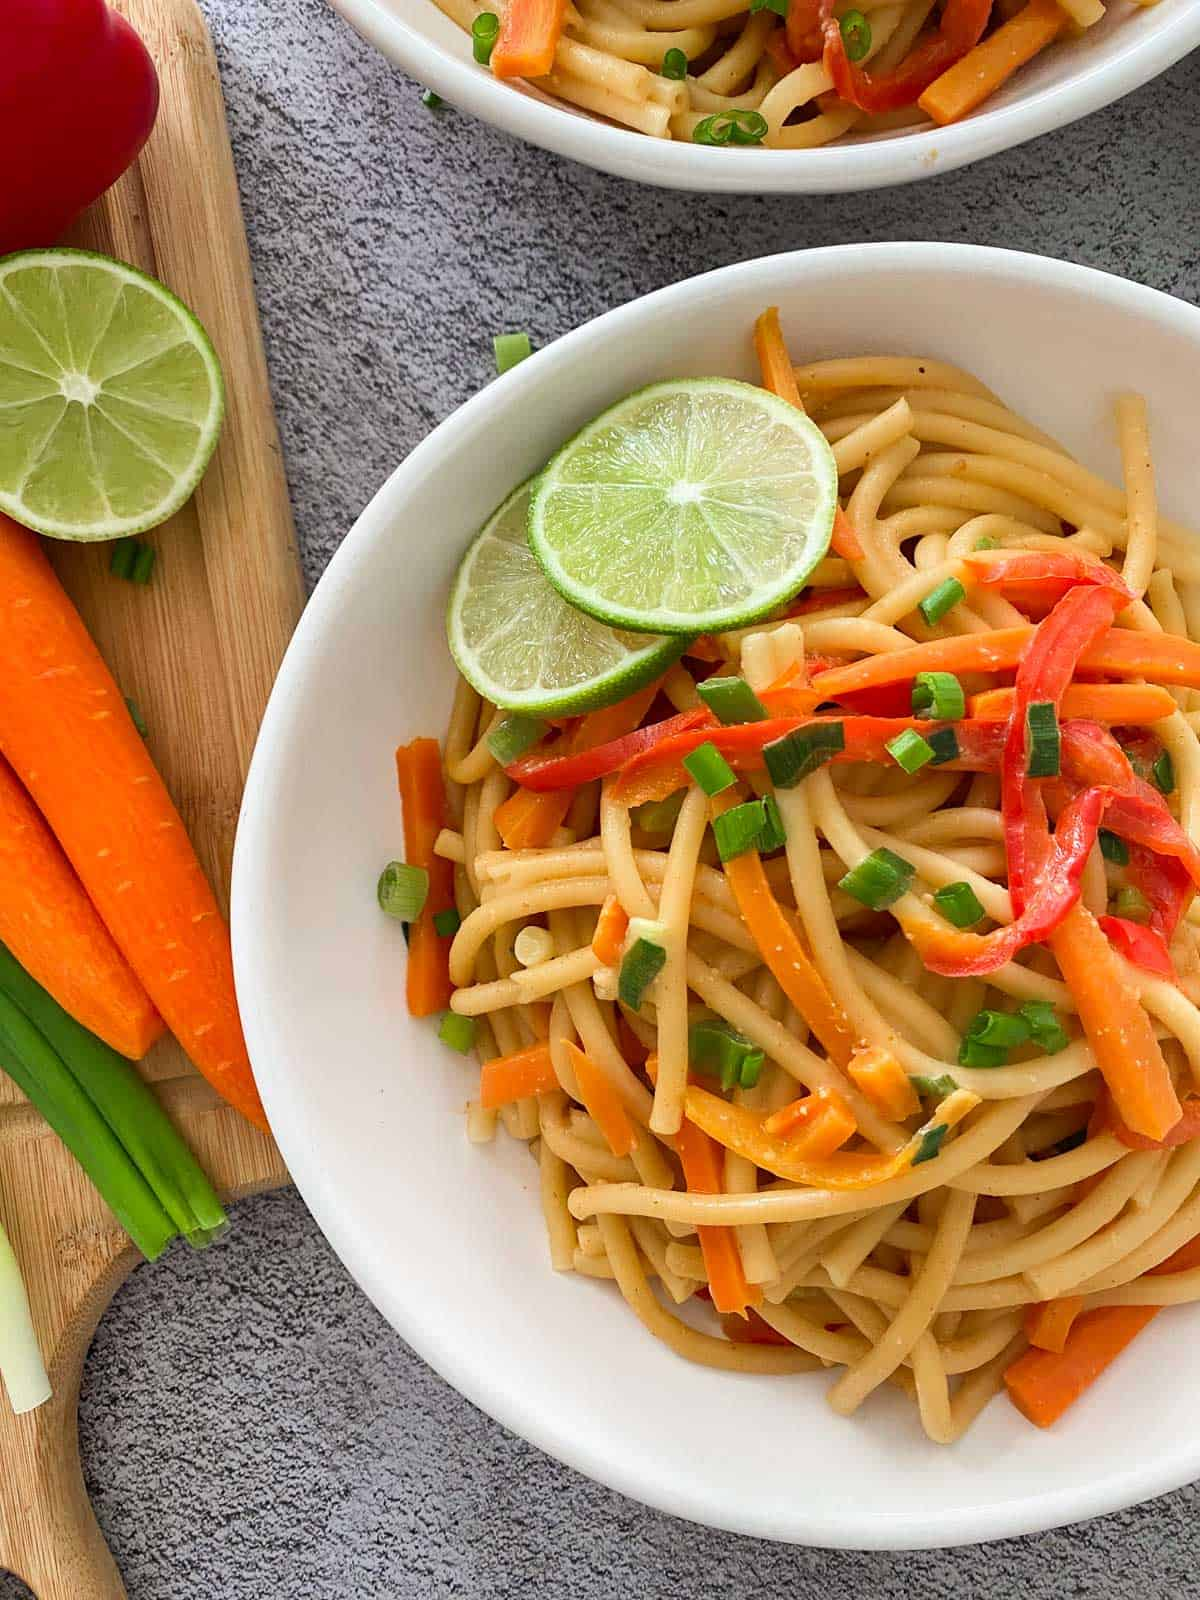 spicy thai noodles in bowl with carrots, red pepper and lime.